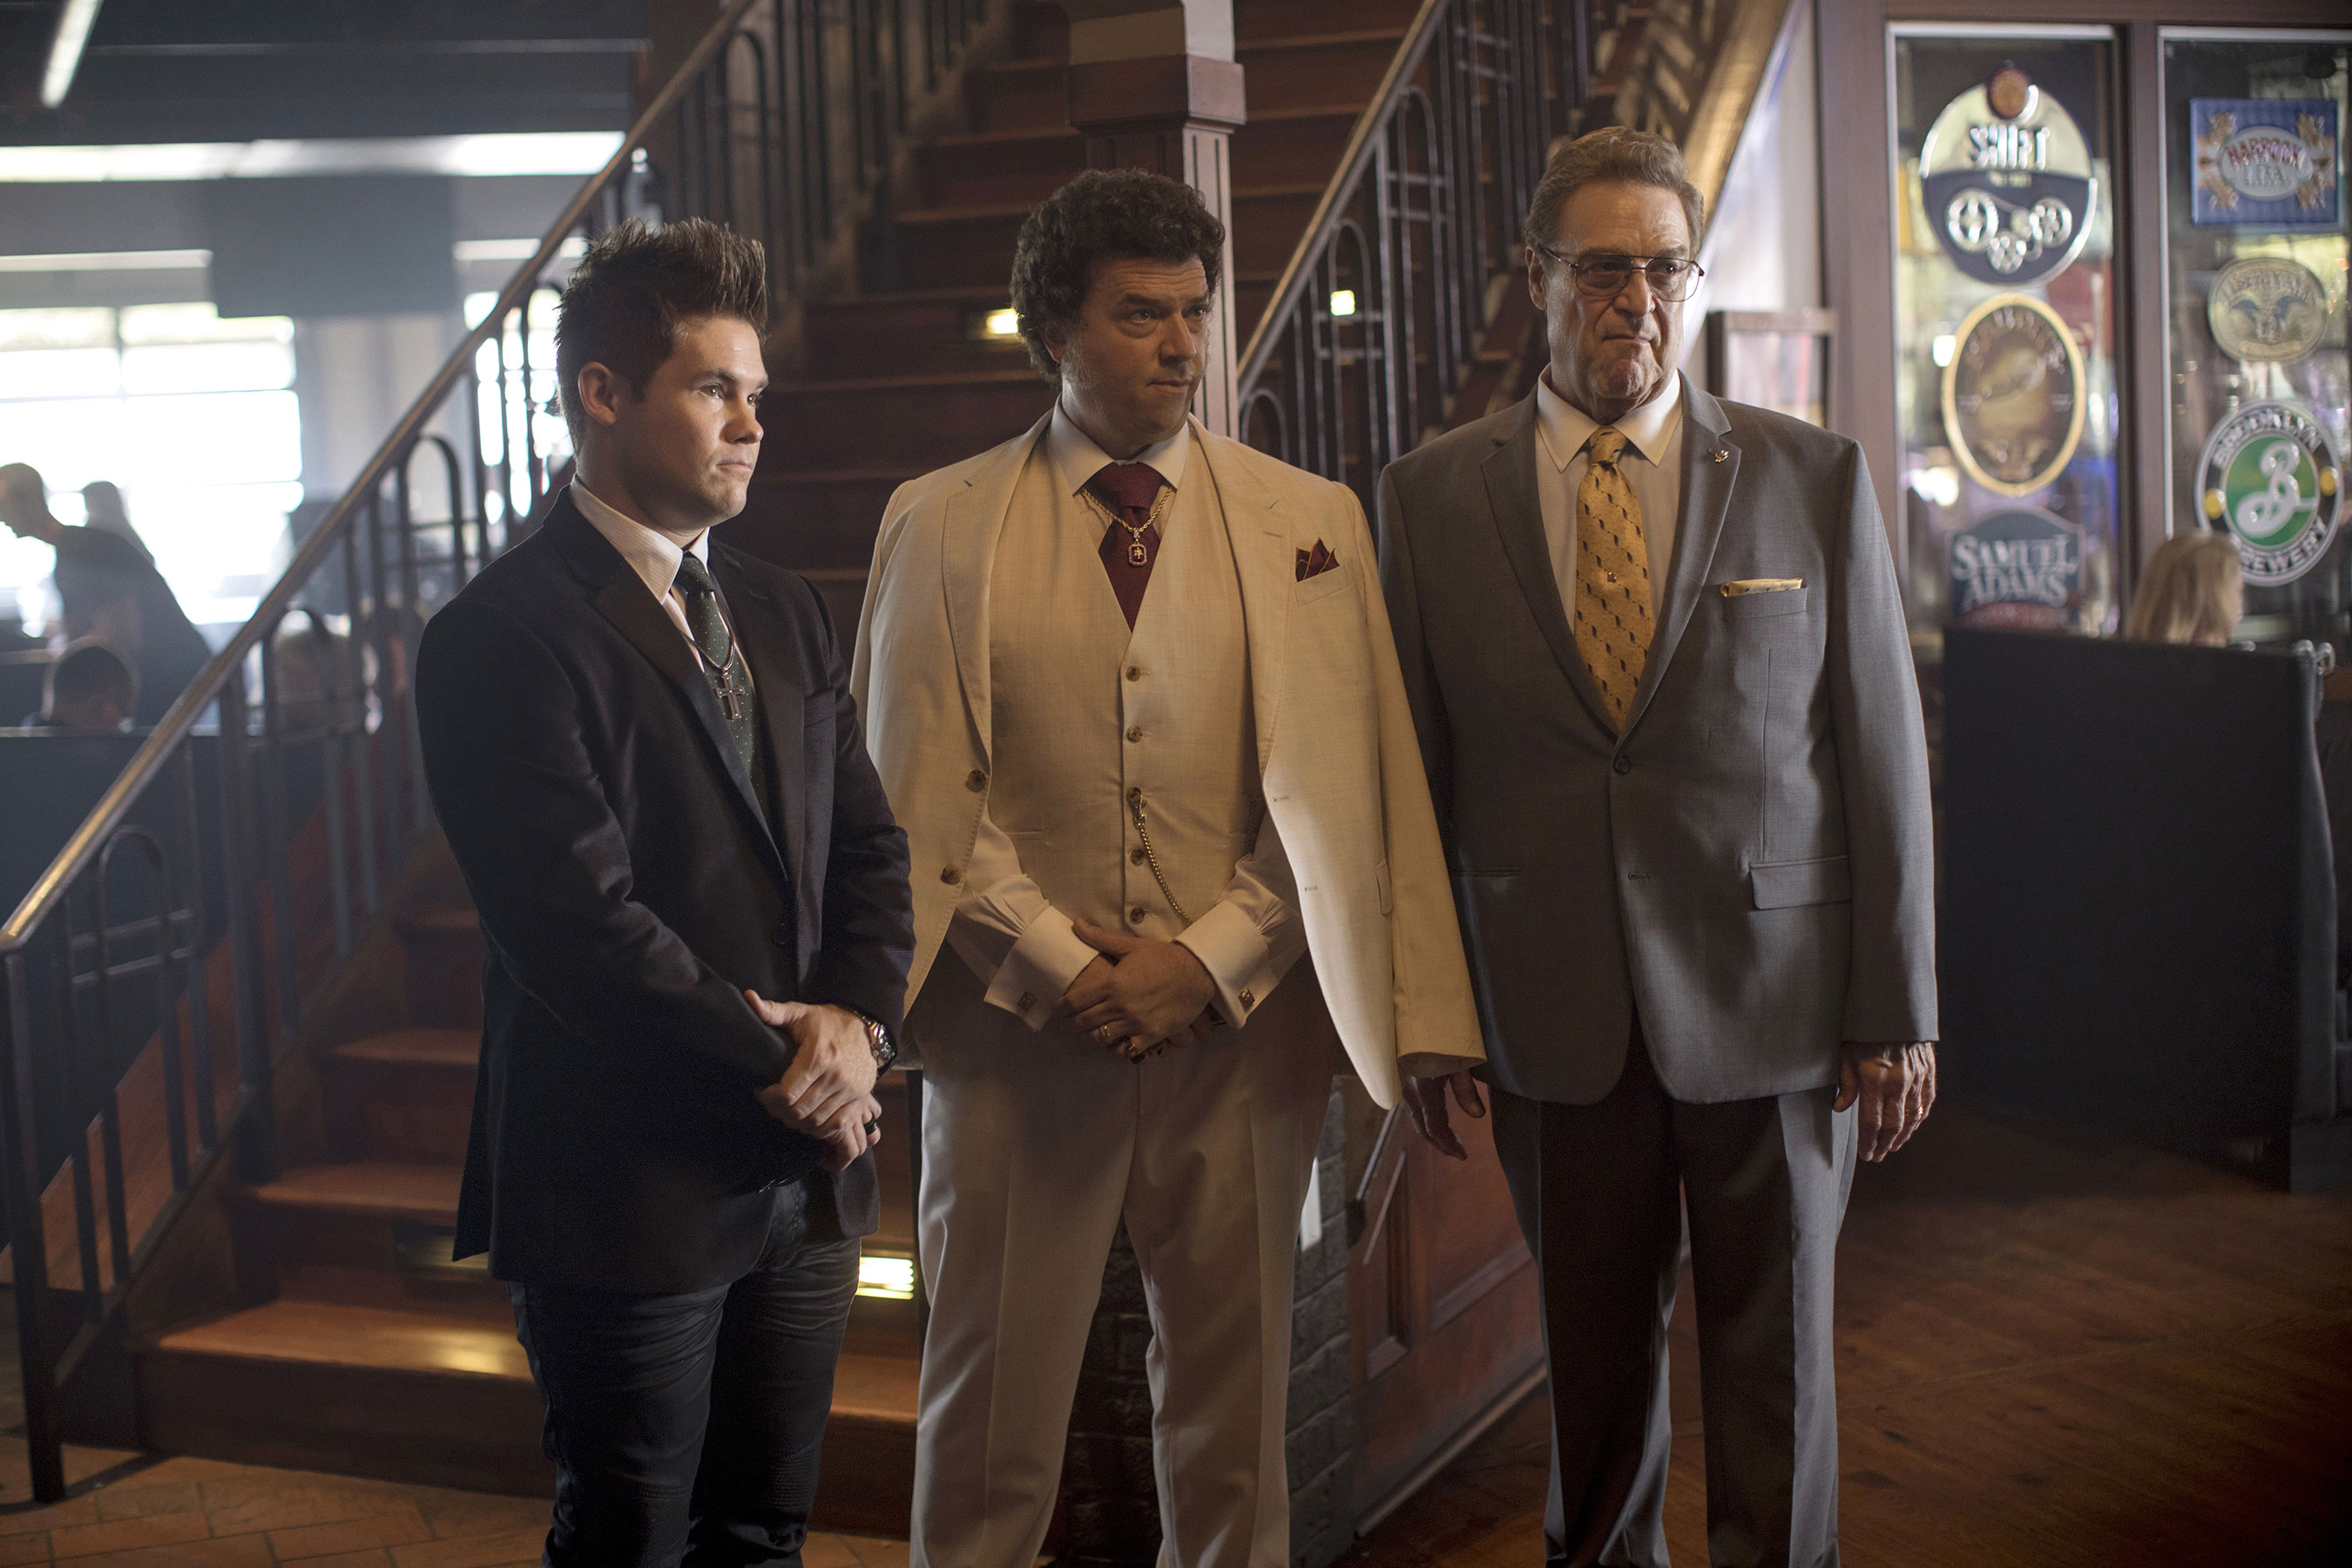 Danny McBride's Righteous Gemstones family were the show's antagonists, until he had a revelation